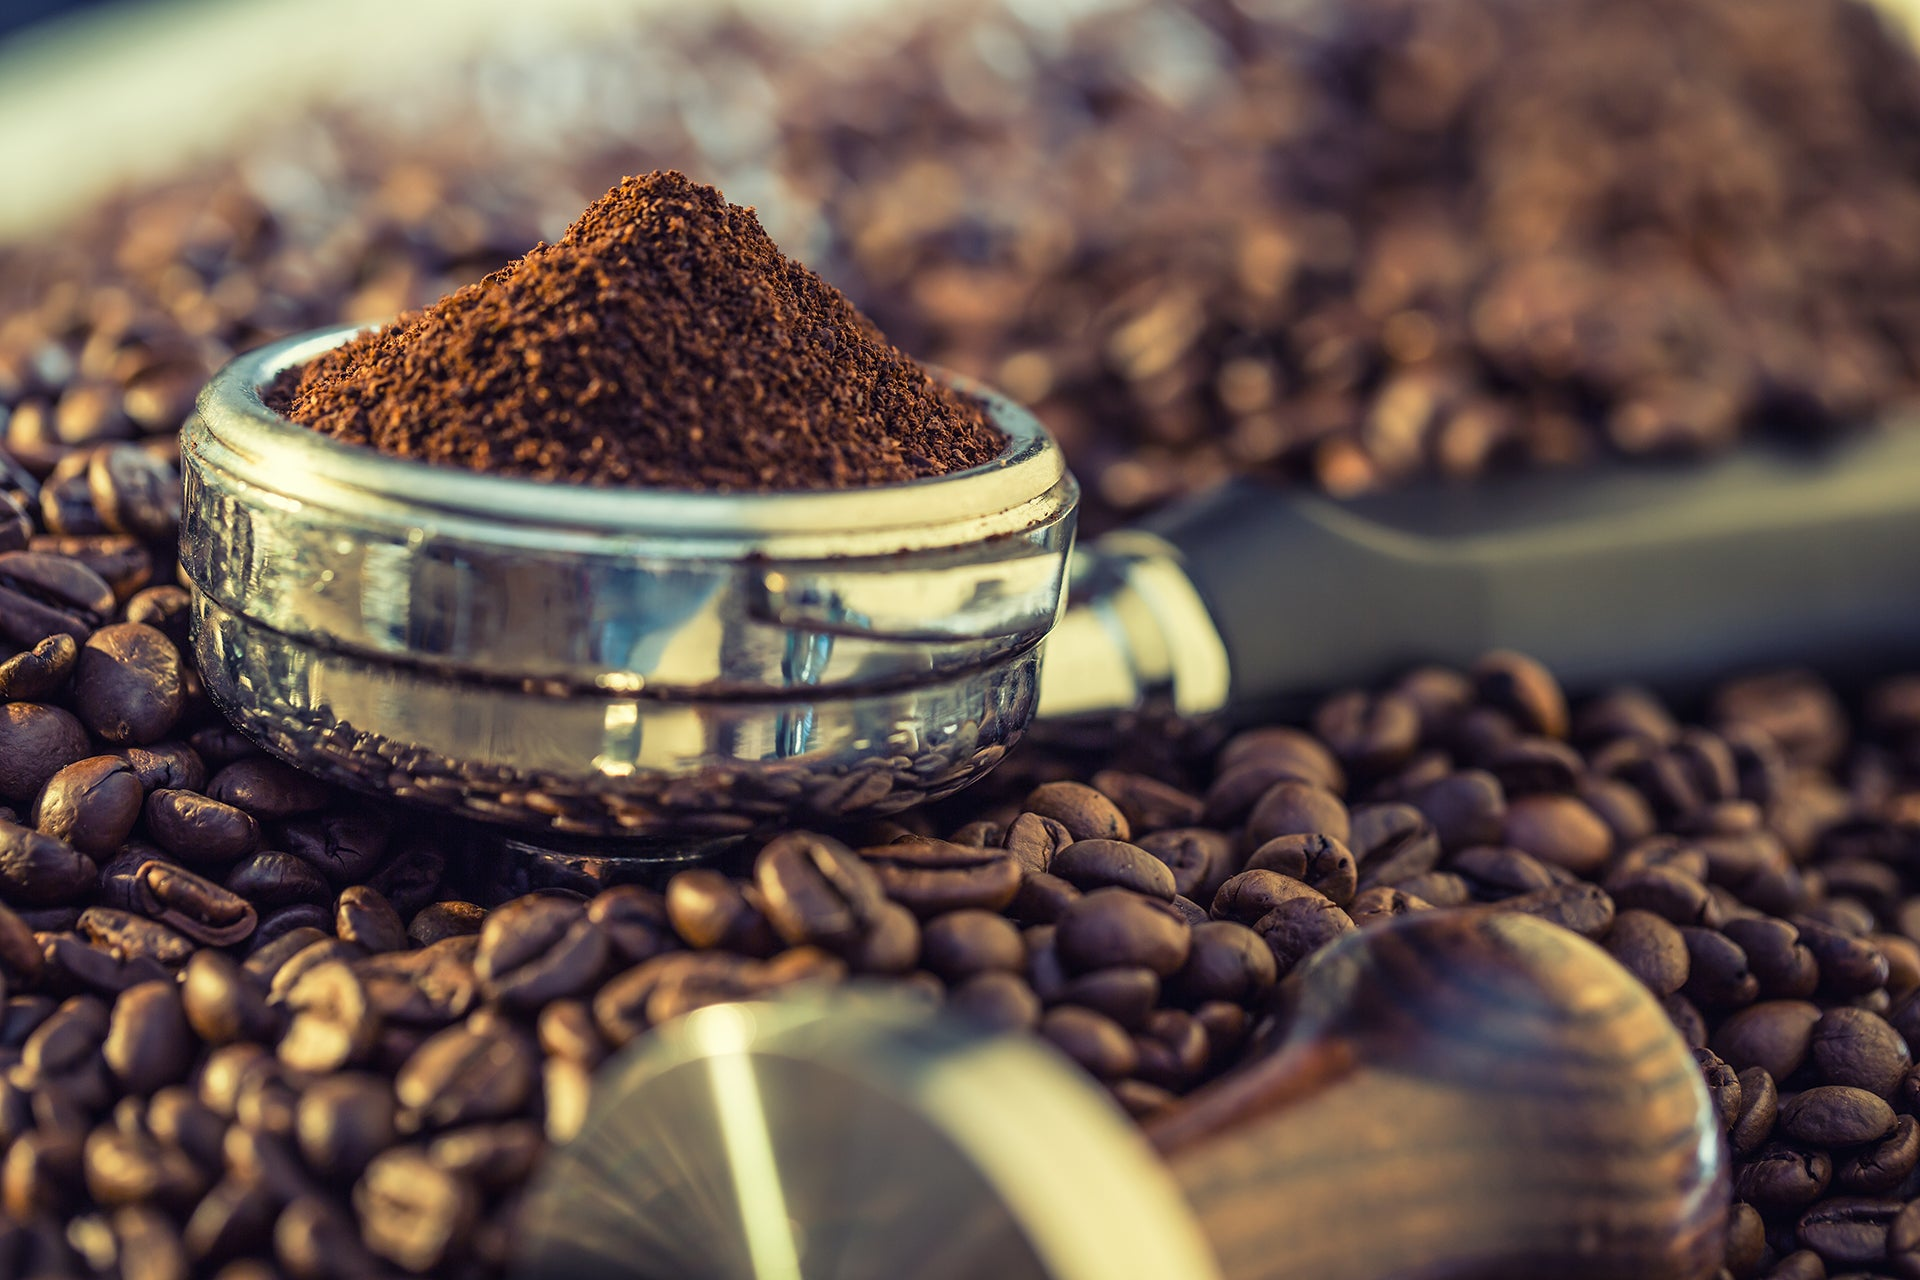 Our Artisanal Freshly Roasted Coffees